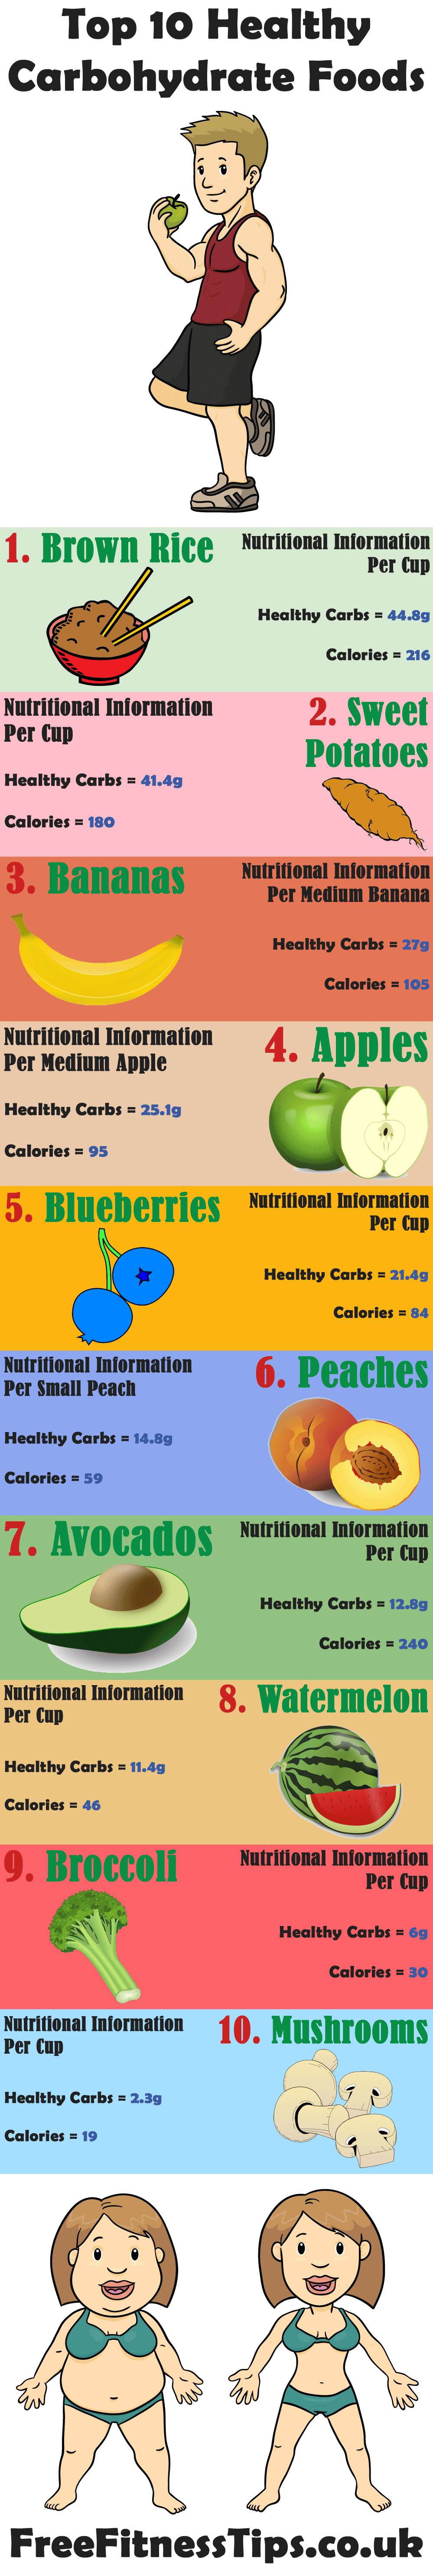 Top 10 Healthy Carbohydrate Foods Infographic Eating